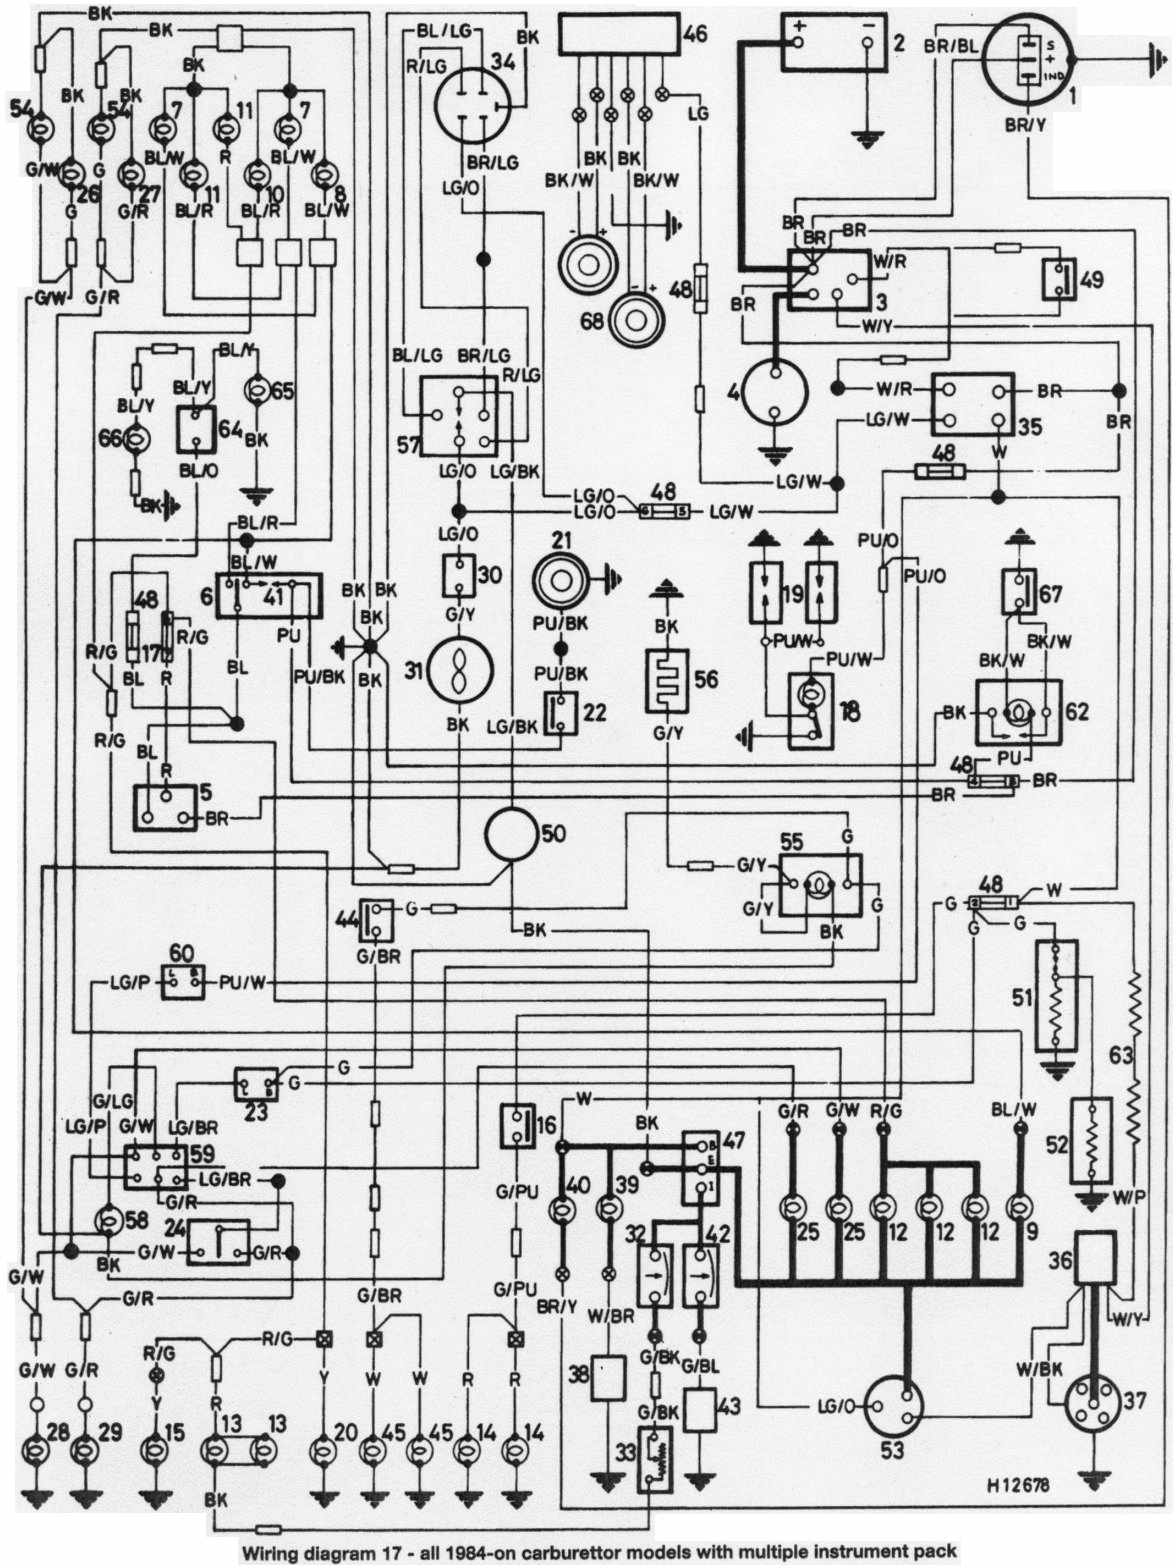 Perfect Nocaster Wiring Diagram Ornament - Electrical Diagram Ideas ...